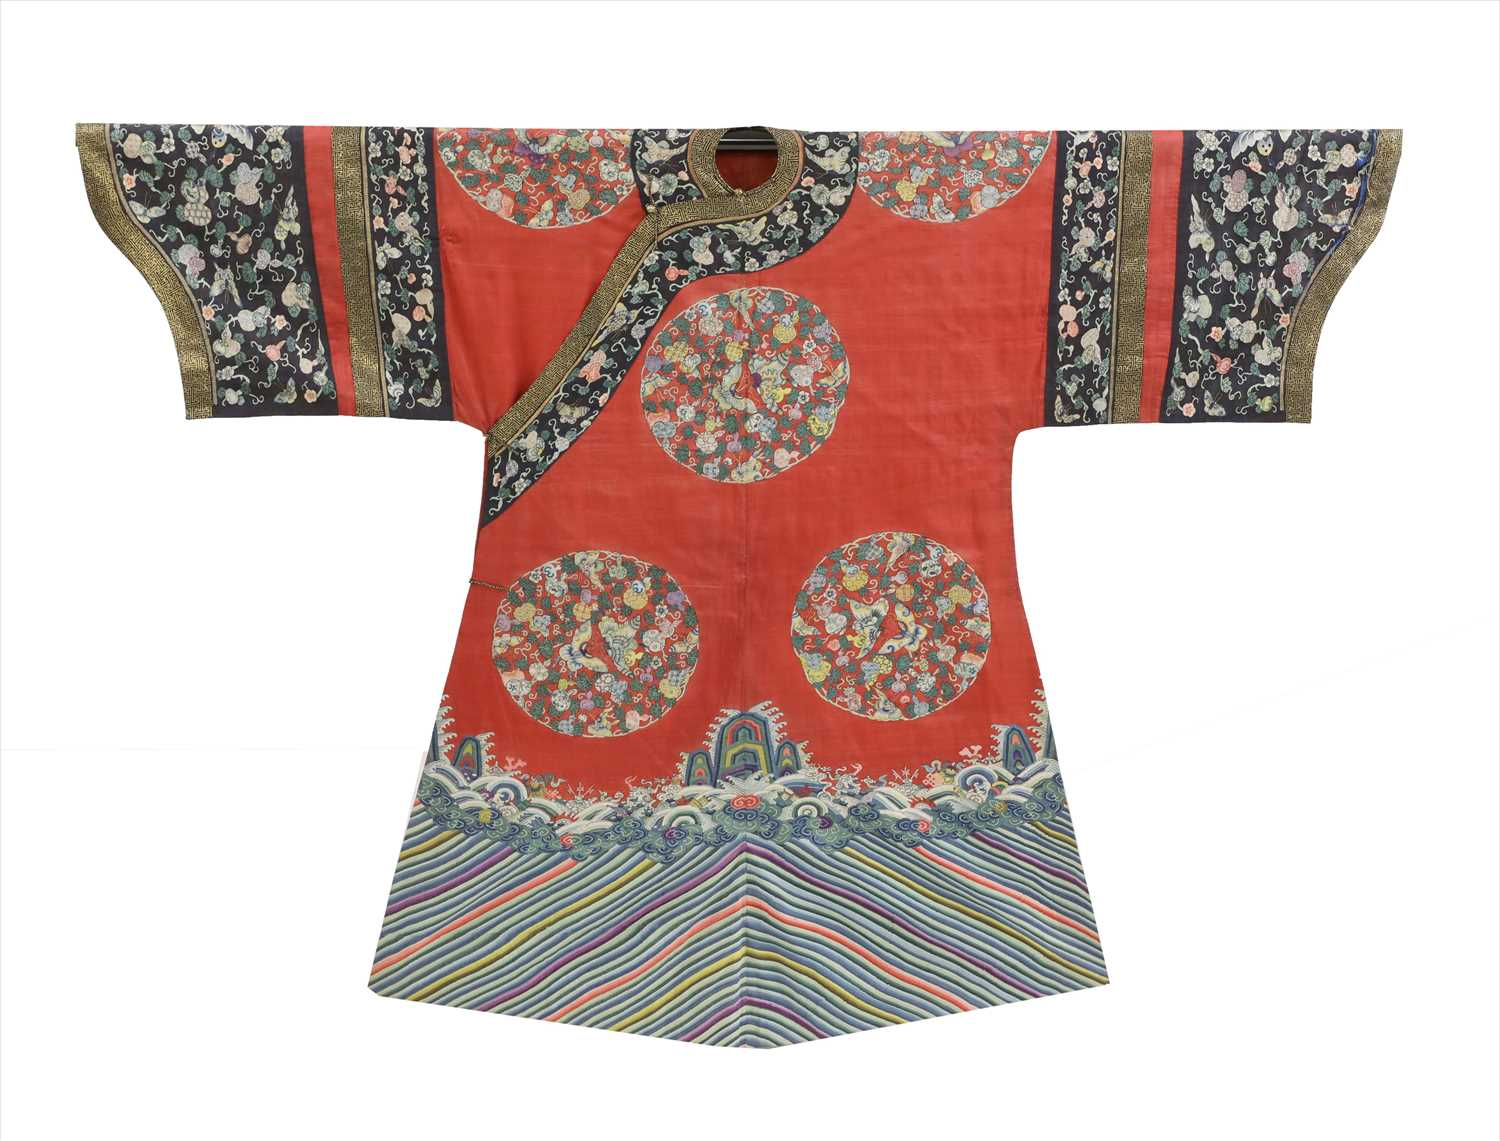 Lot 100 - A Chinese embroidered kesi red robe